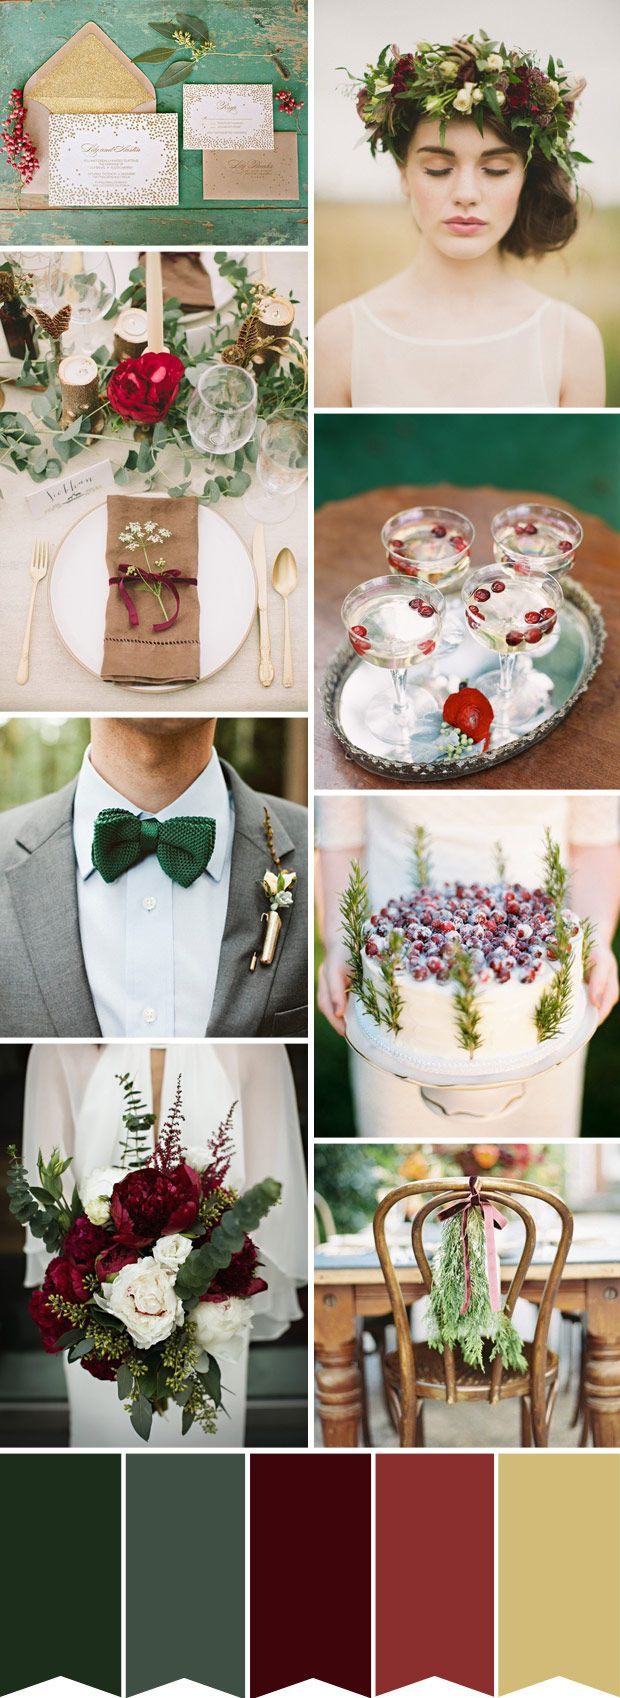 A Rustic Winter Wedding colour palette